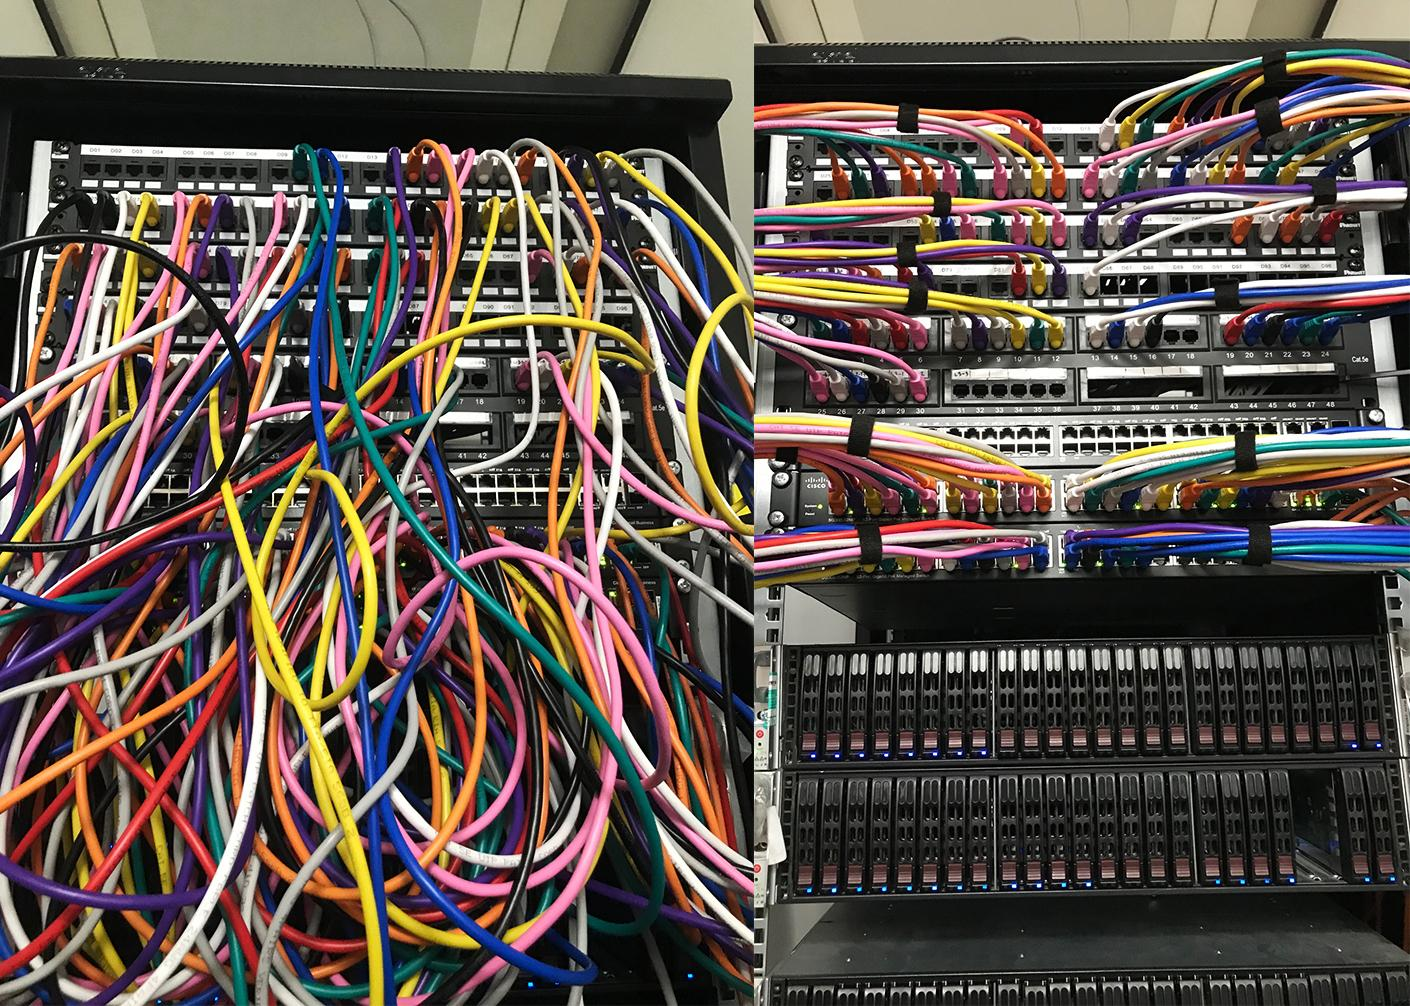 Data cabinet tidy, colour coded cables